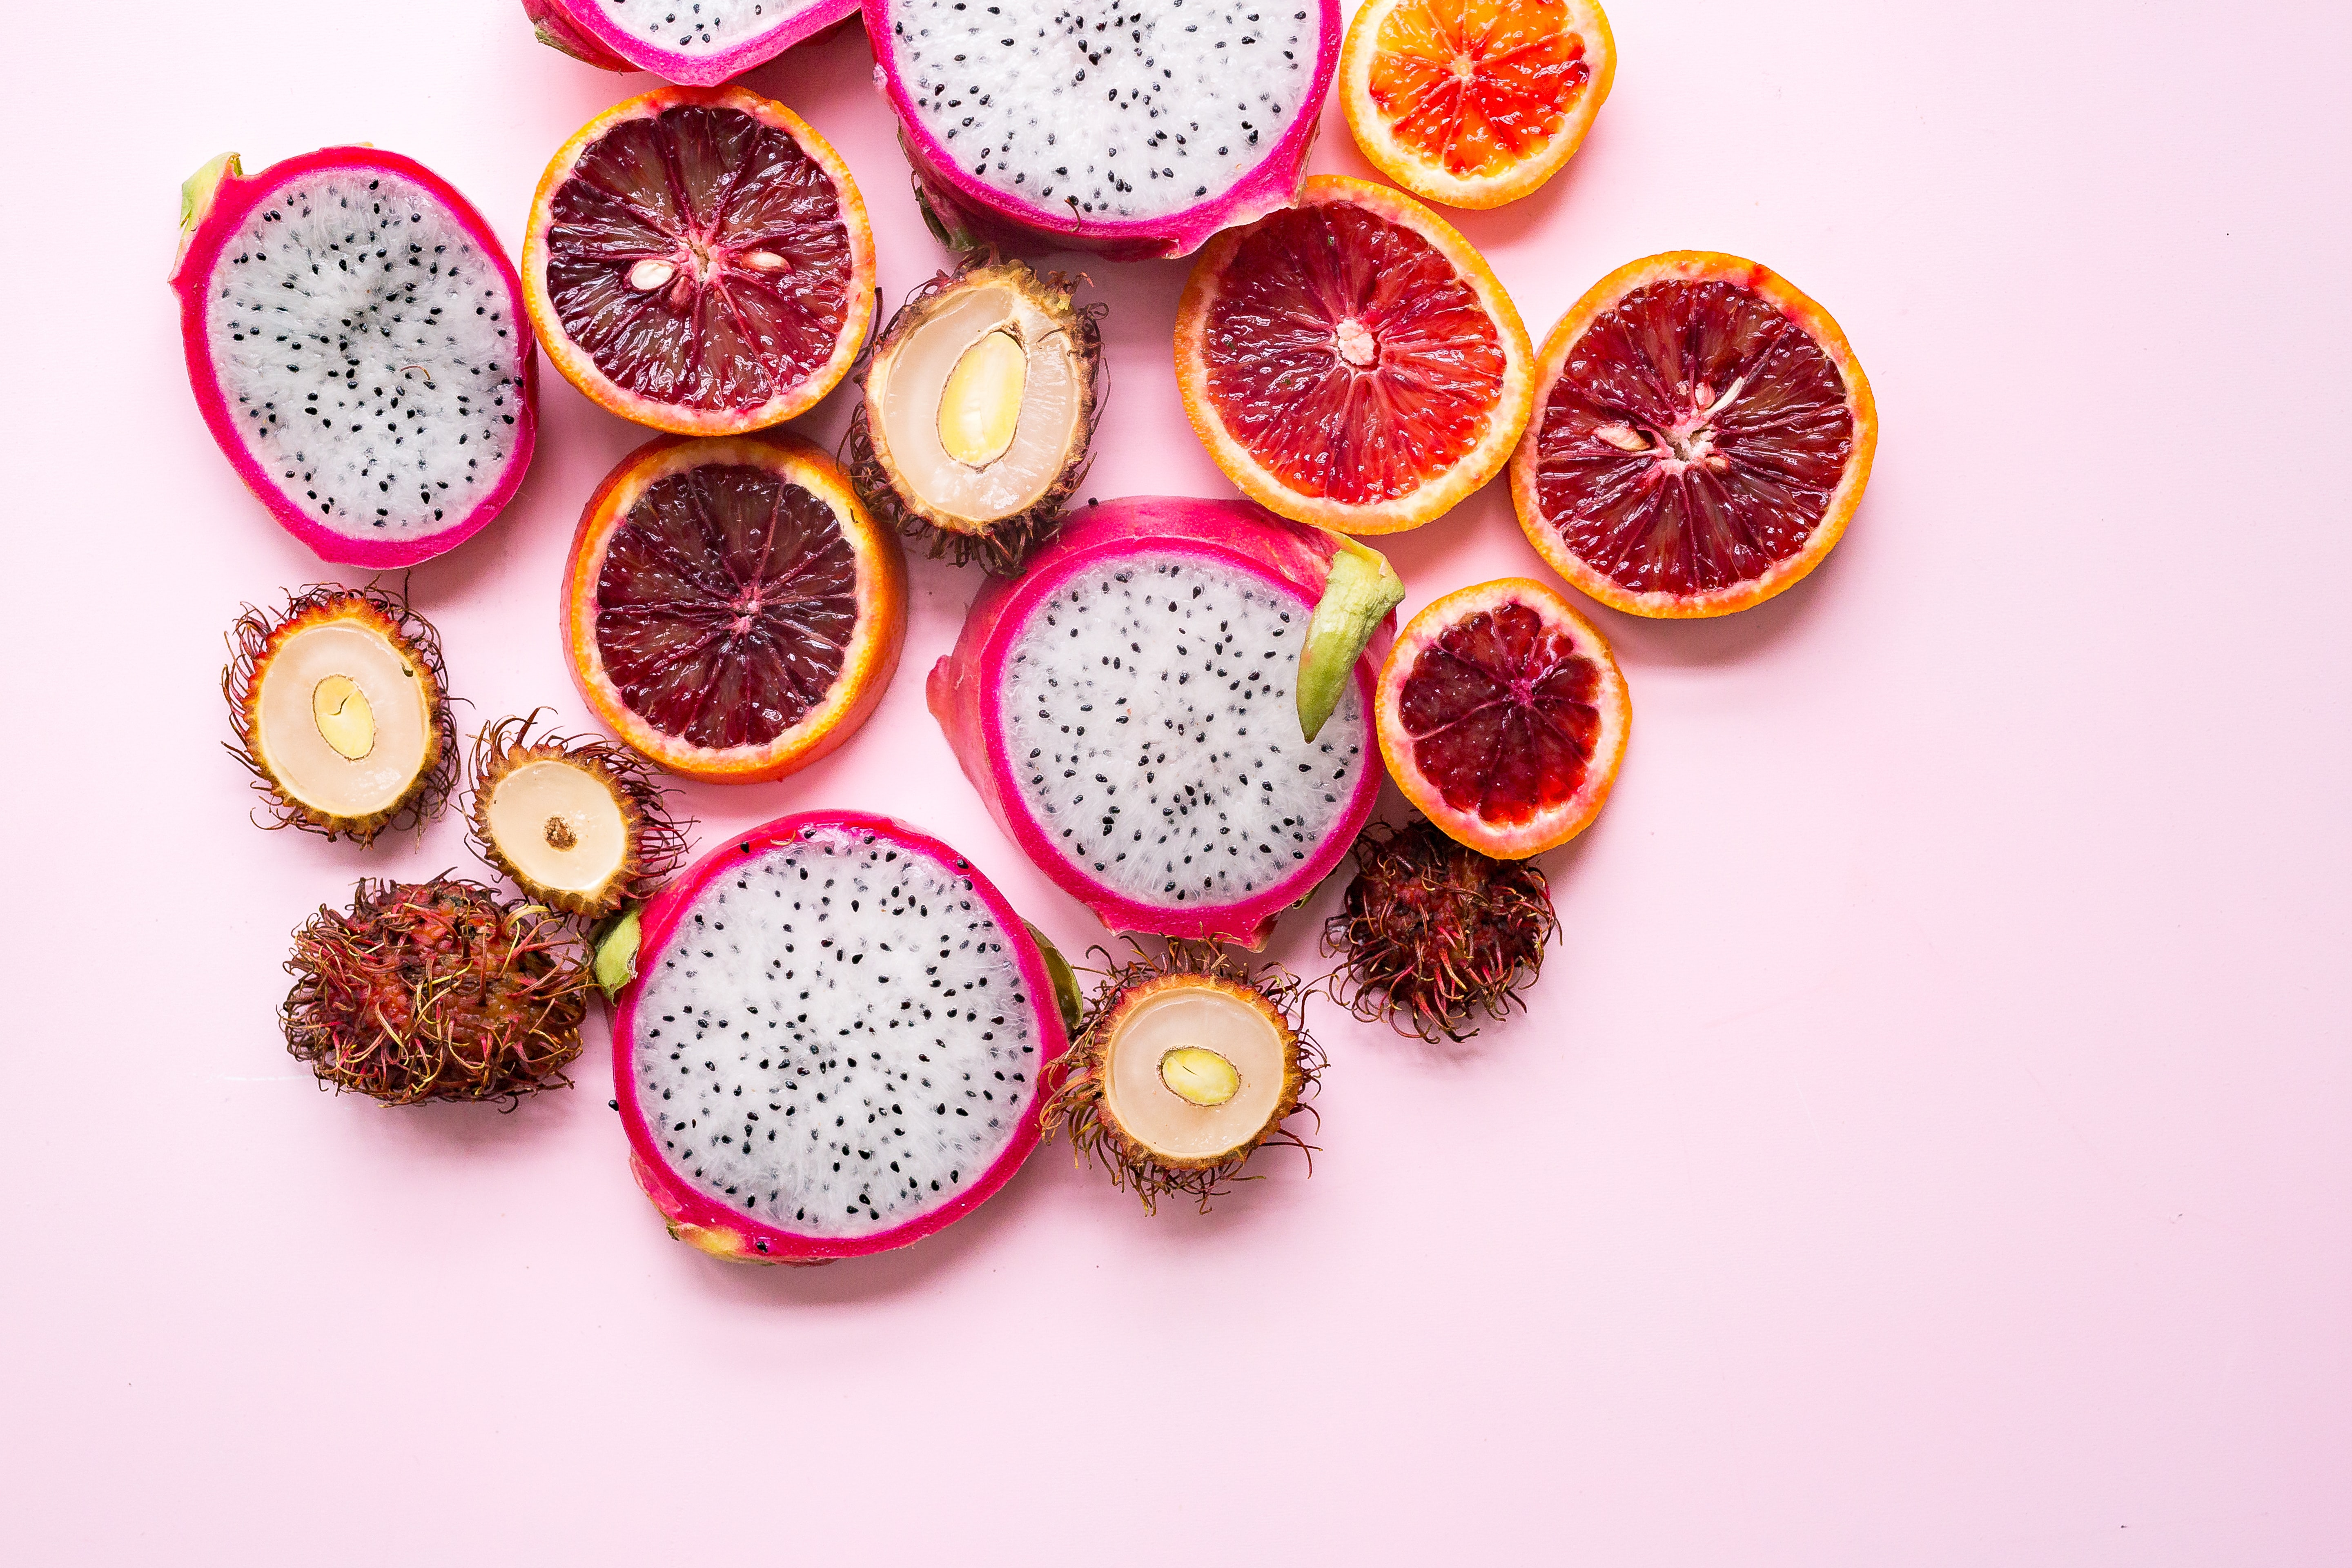 Slices of blood oranges, dragon fruit, and tropical fruit